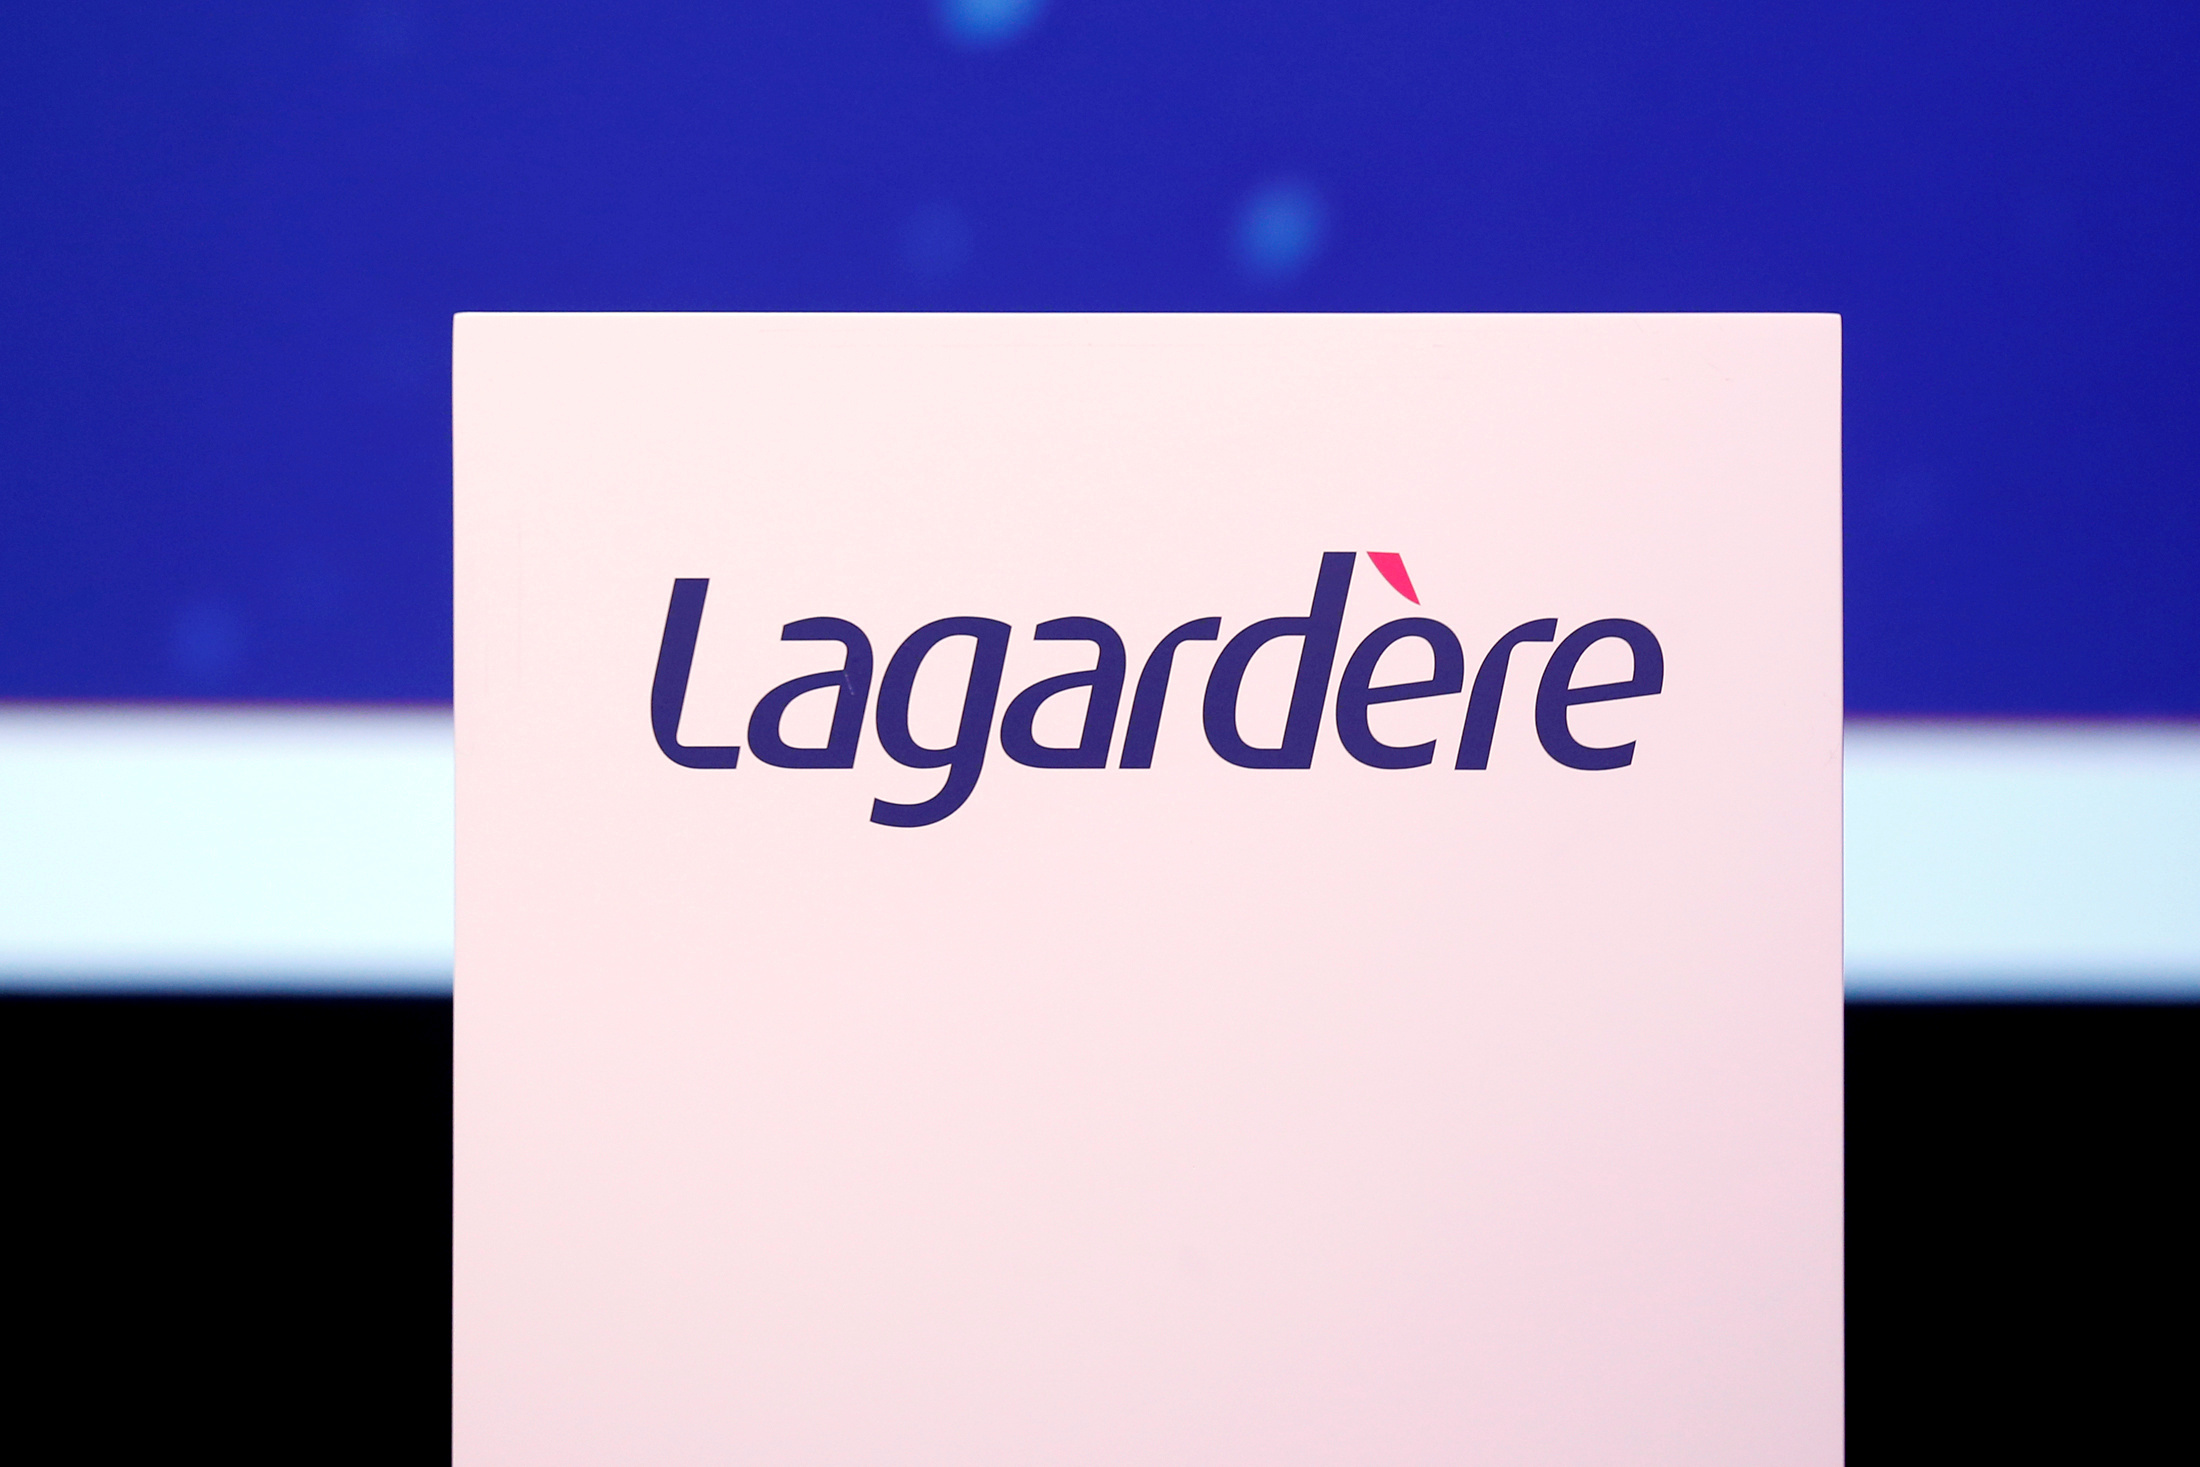 The logo of French media group Lagardere is seen during the groups annual general meeting in Paris, France, May 3, 2016. REUTERS/Benoit Tessier